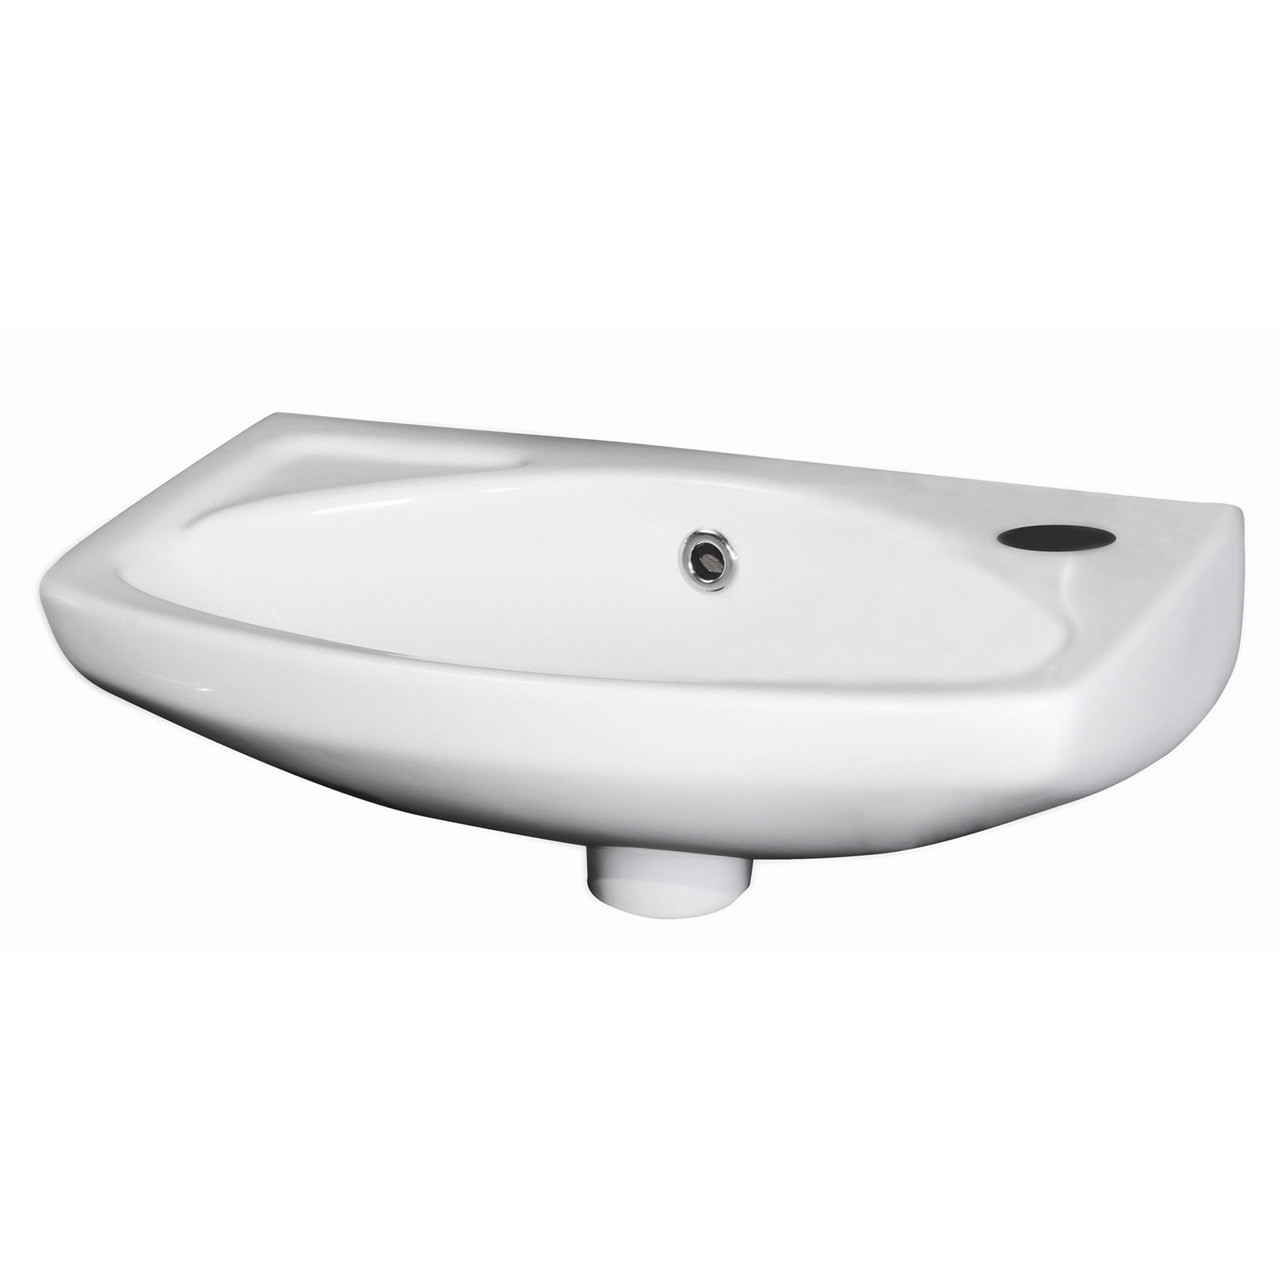 Premier 450mm Wall Hung Basin - NCU842